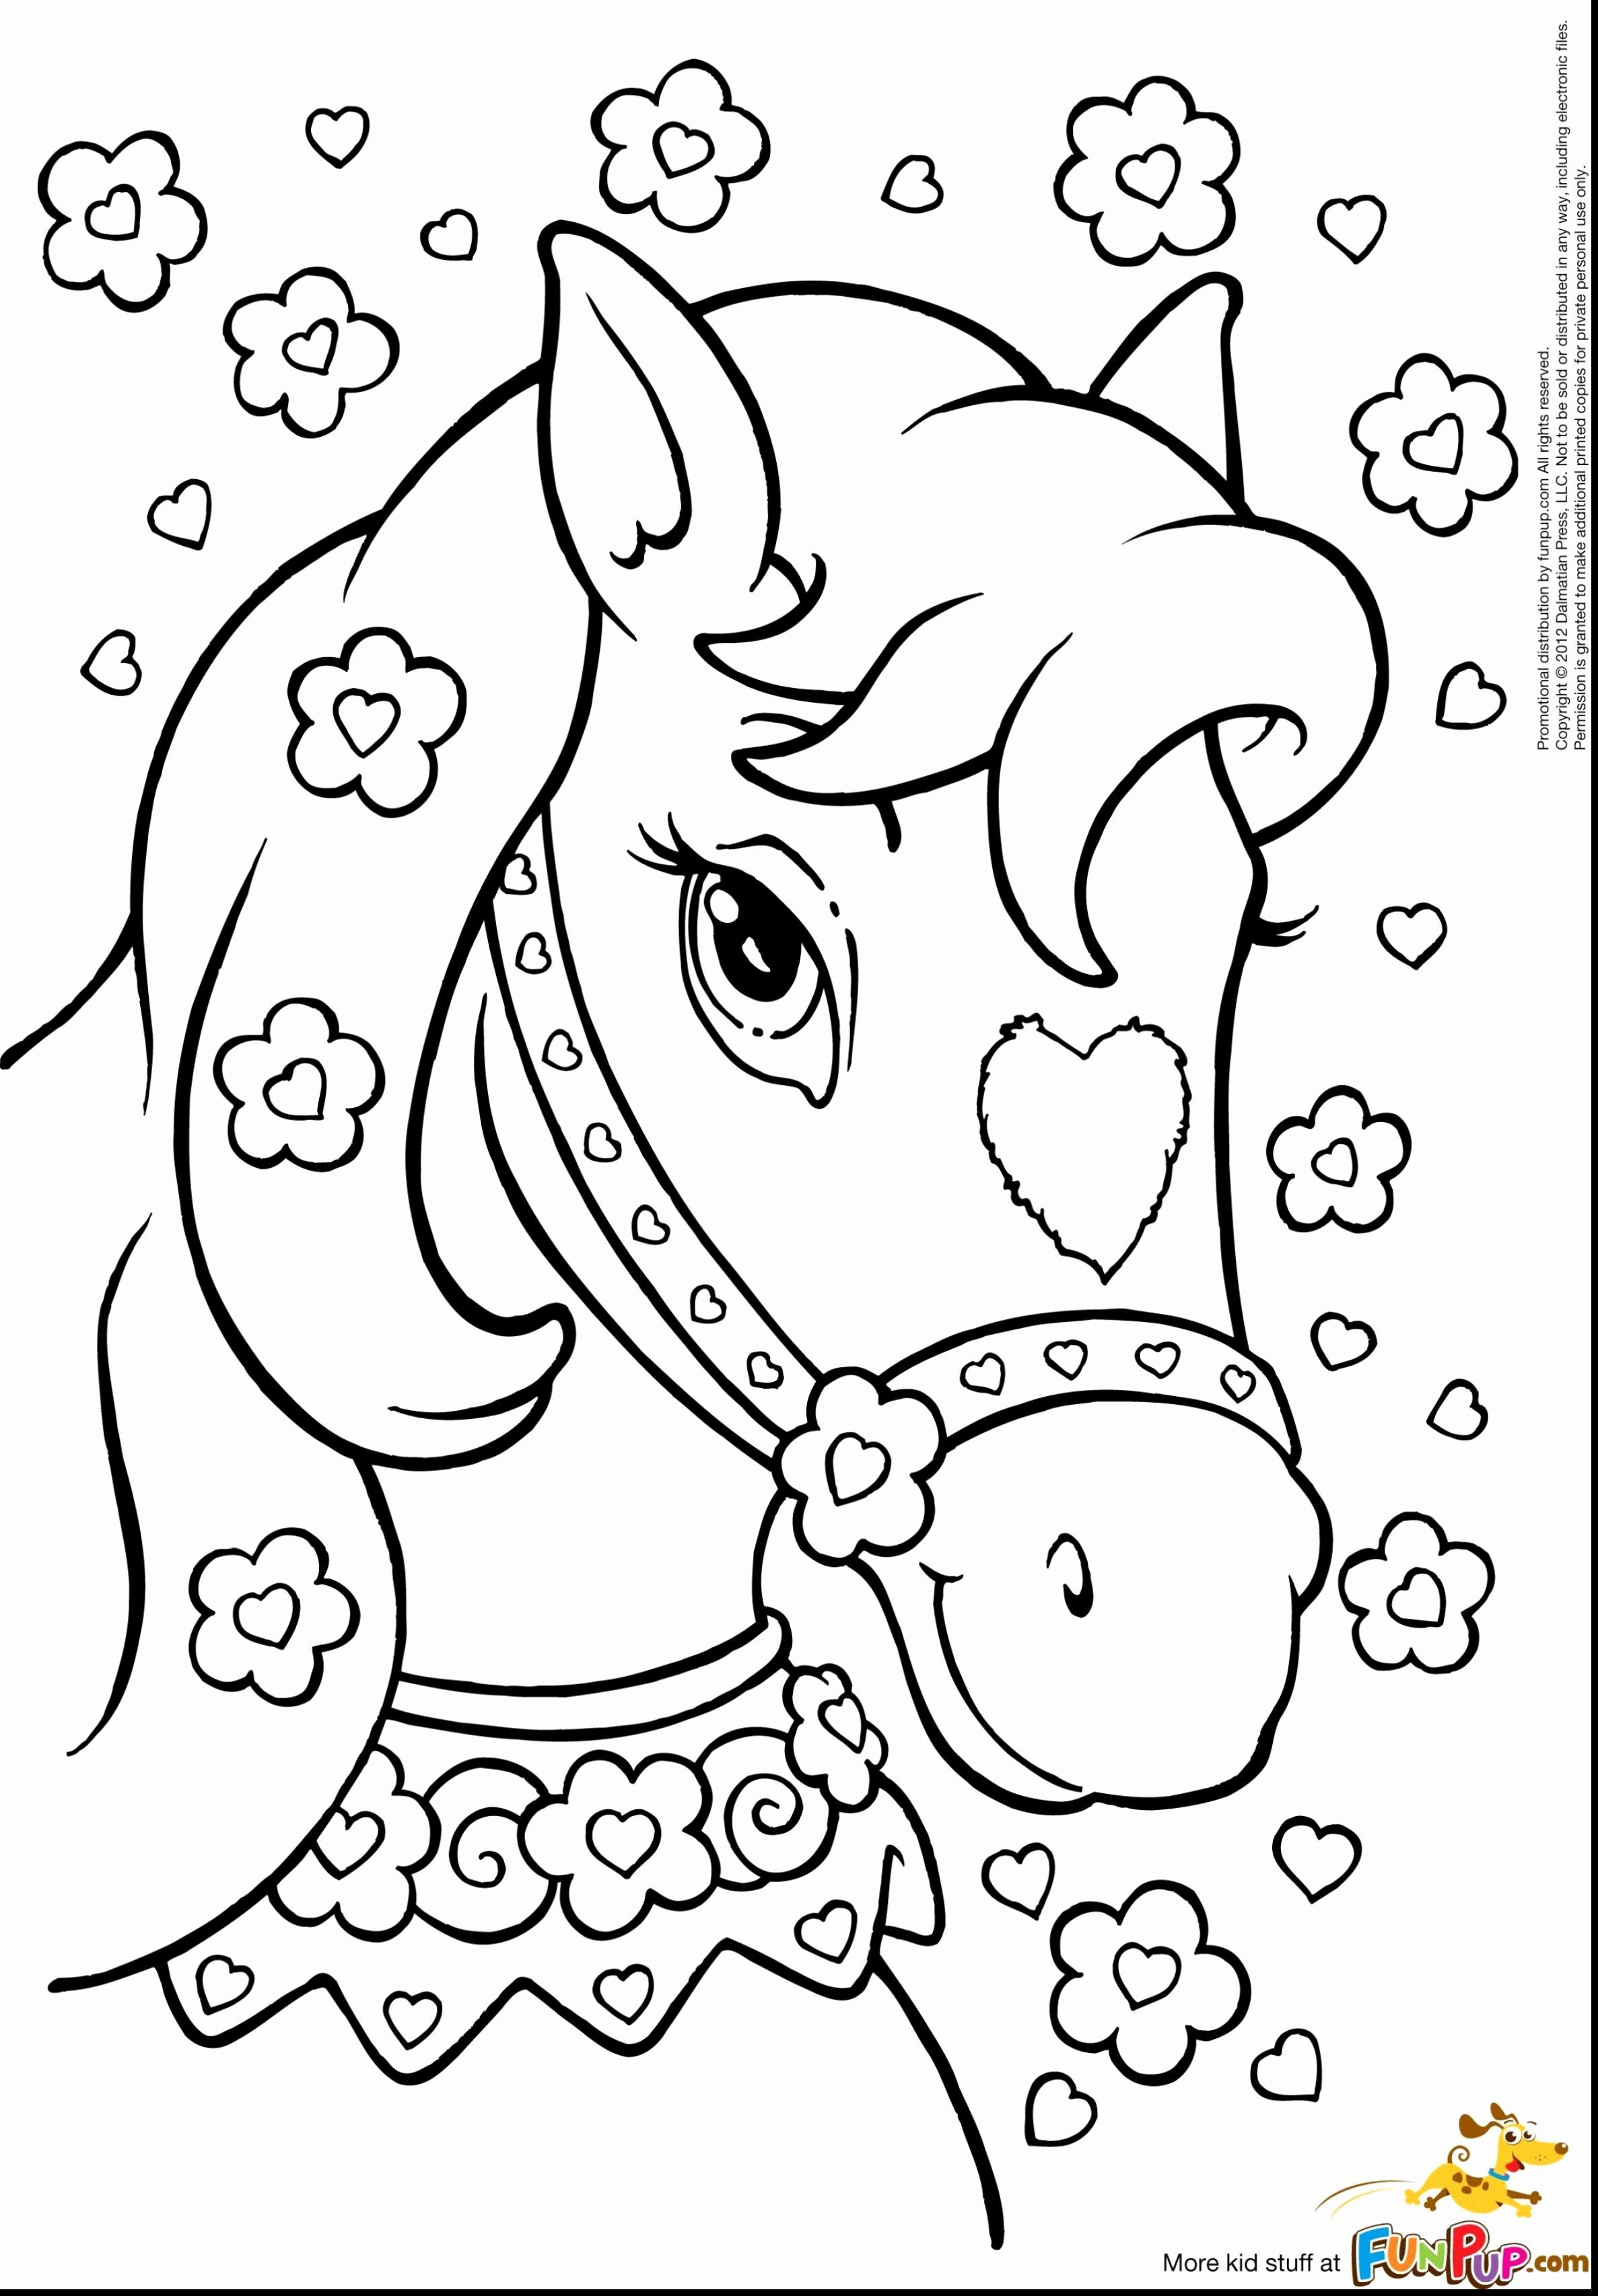 Coloring Activities For 7 Year Old Fresh Free Frozen Coloring Pages Unicorn Coloring Pages Kids Printable Coloring Pages Disney Princess Coloring Pages